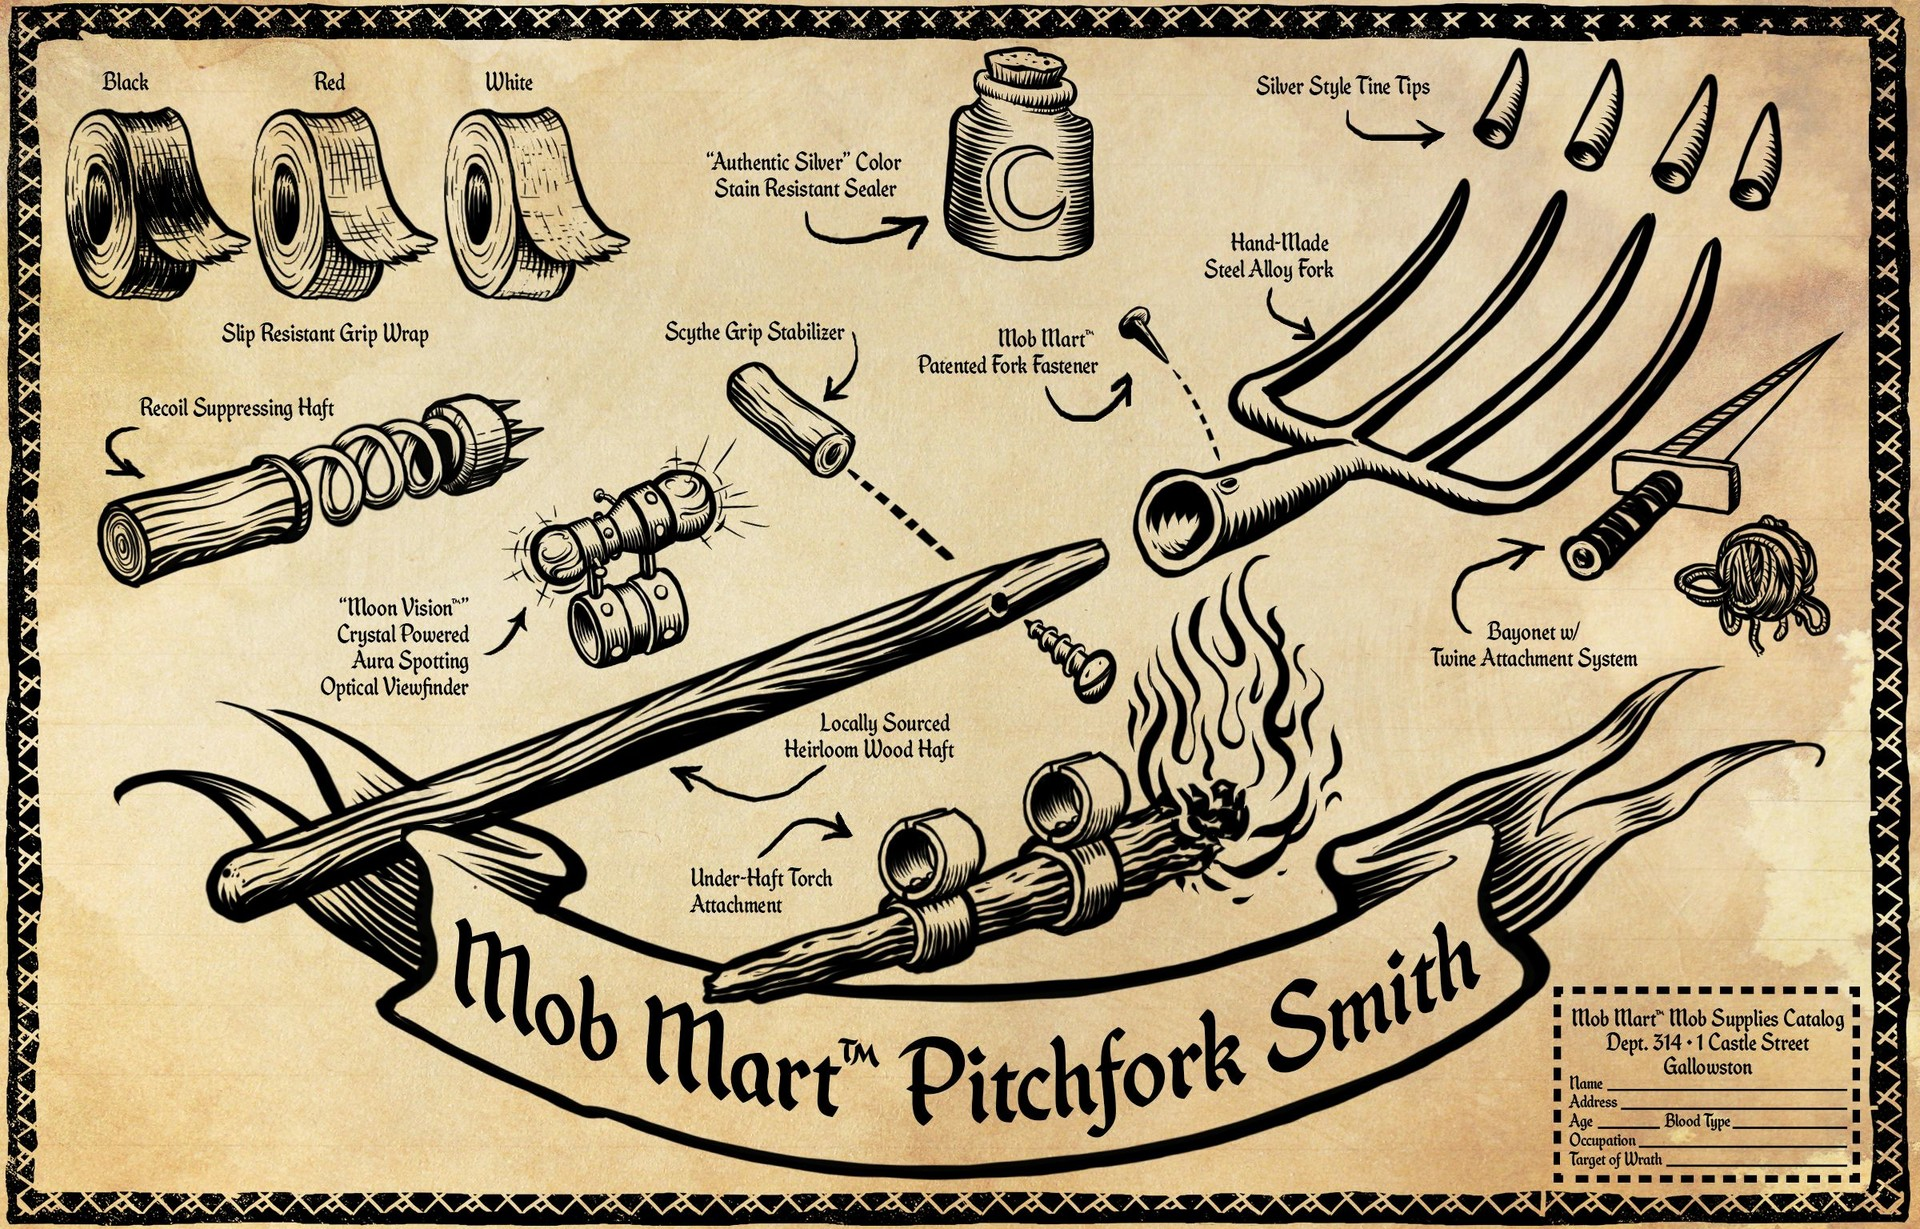 Pitchfork Smith - Mock catalog advertisement for Werewolves Within lore